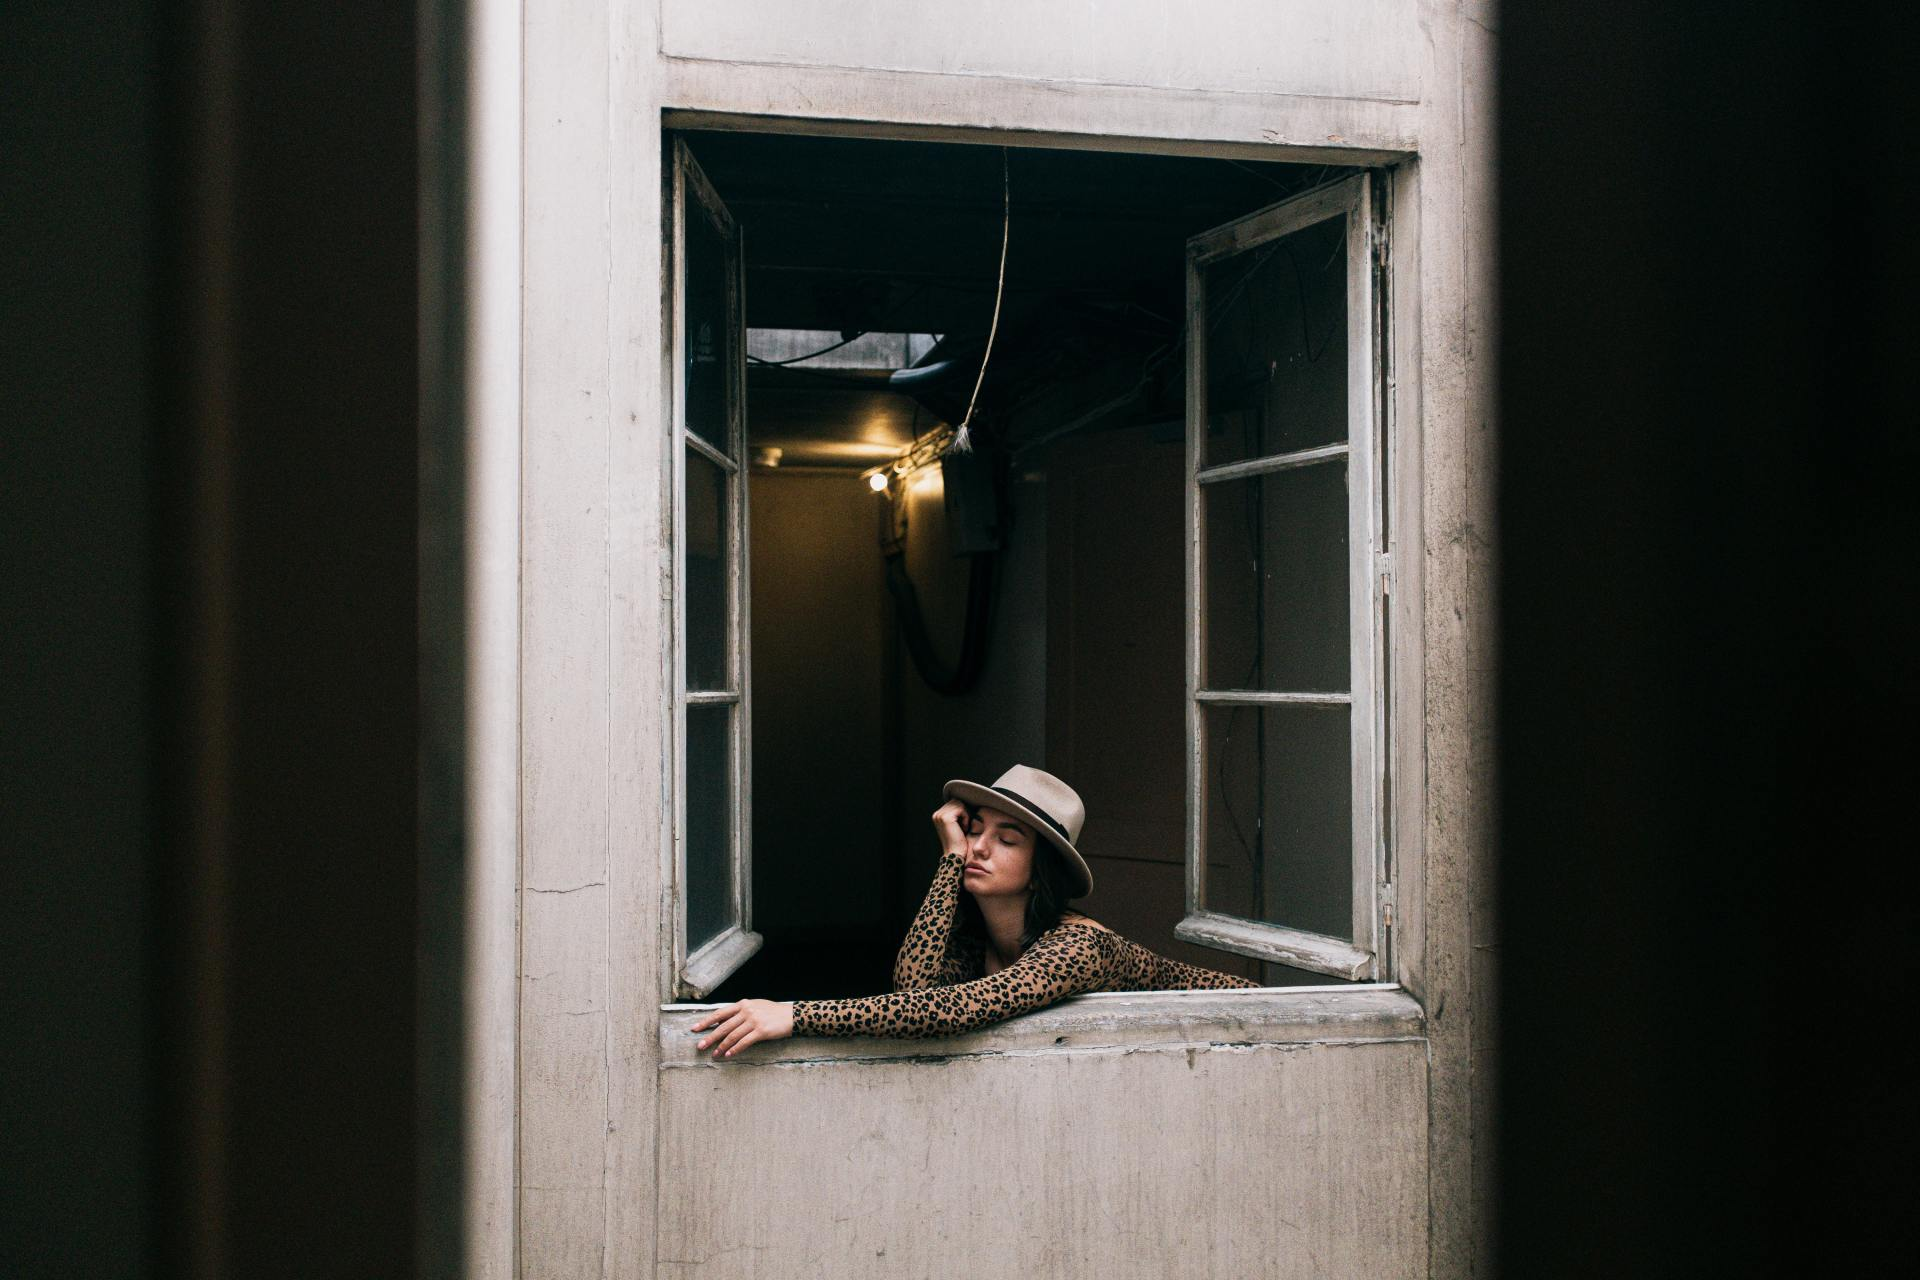 Photo Of Woman Leaning On Window